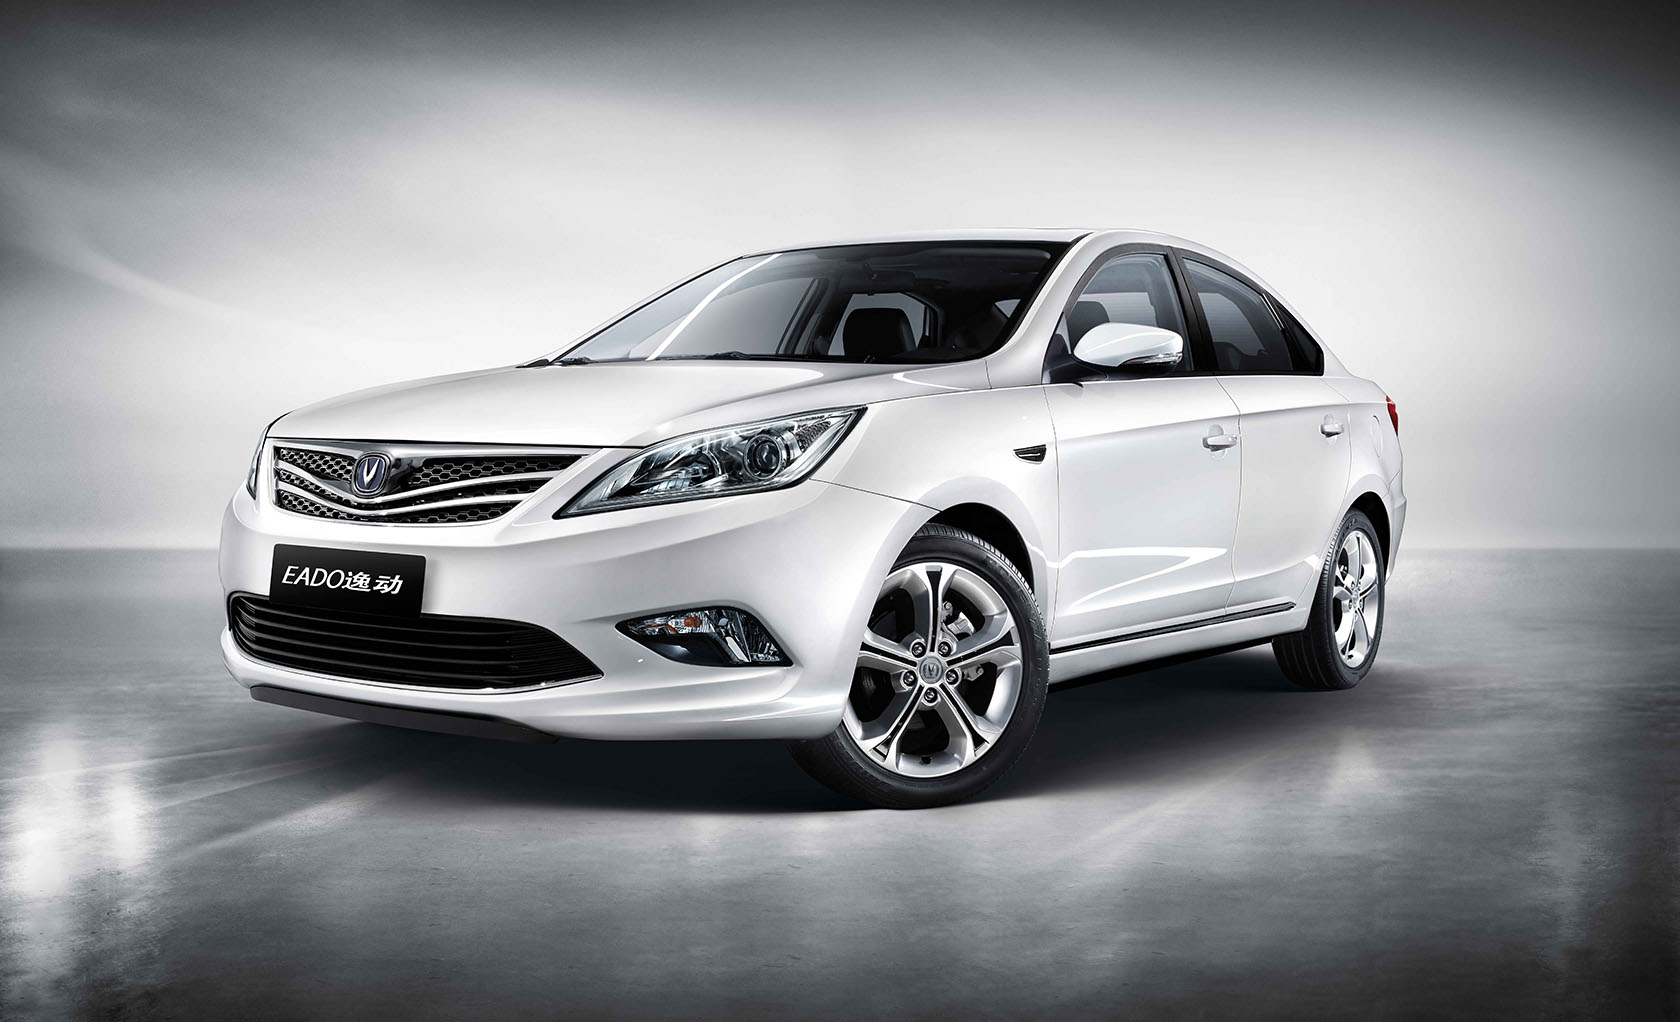 Changan Eado Price in Saudi Arabia - New Changan Eado ...